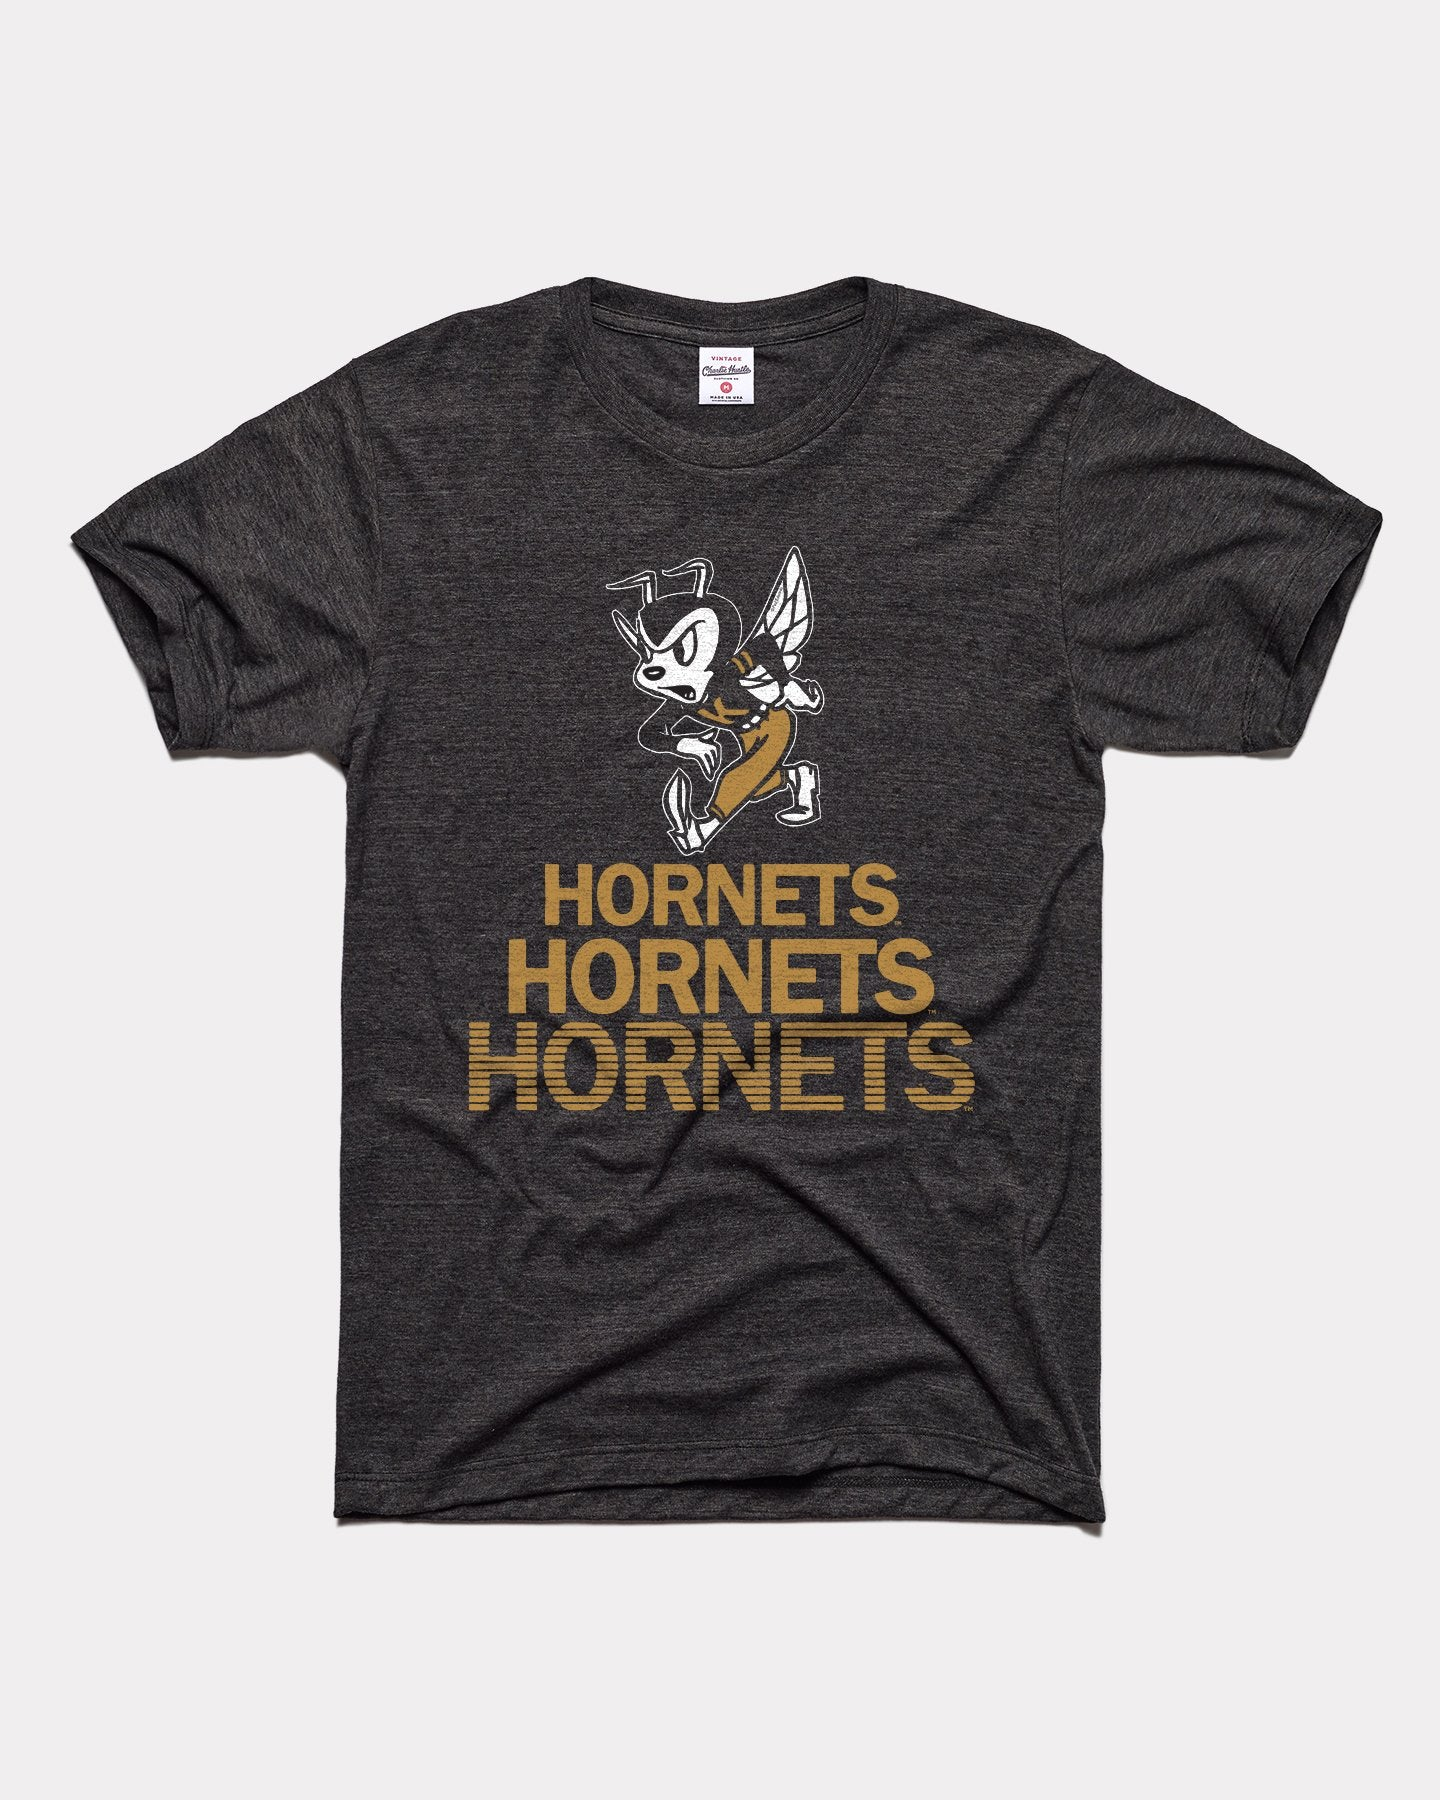 Black Emporia State University Hornets Stacked Vintage T-Shirt